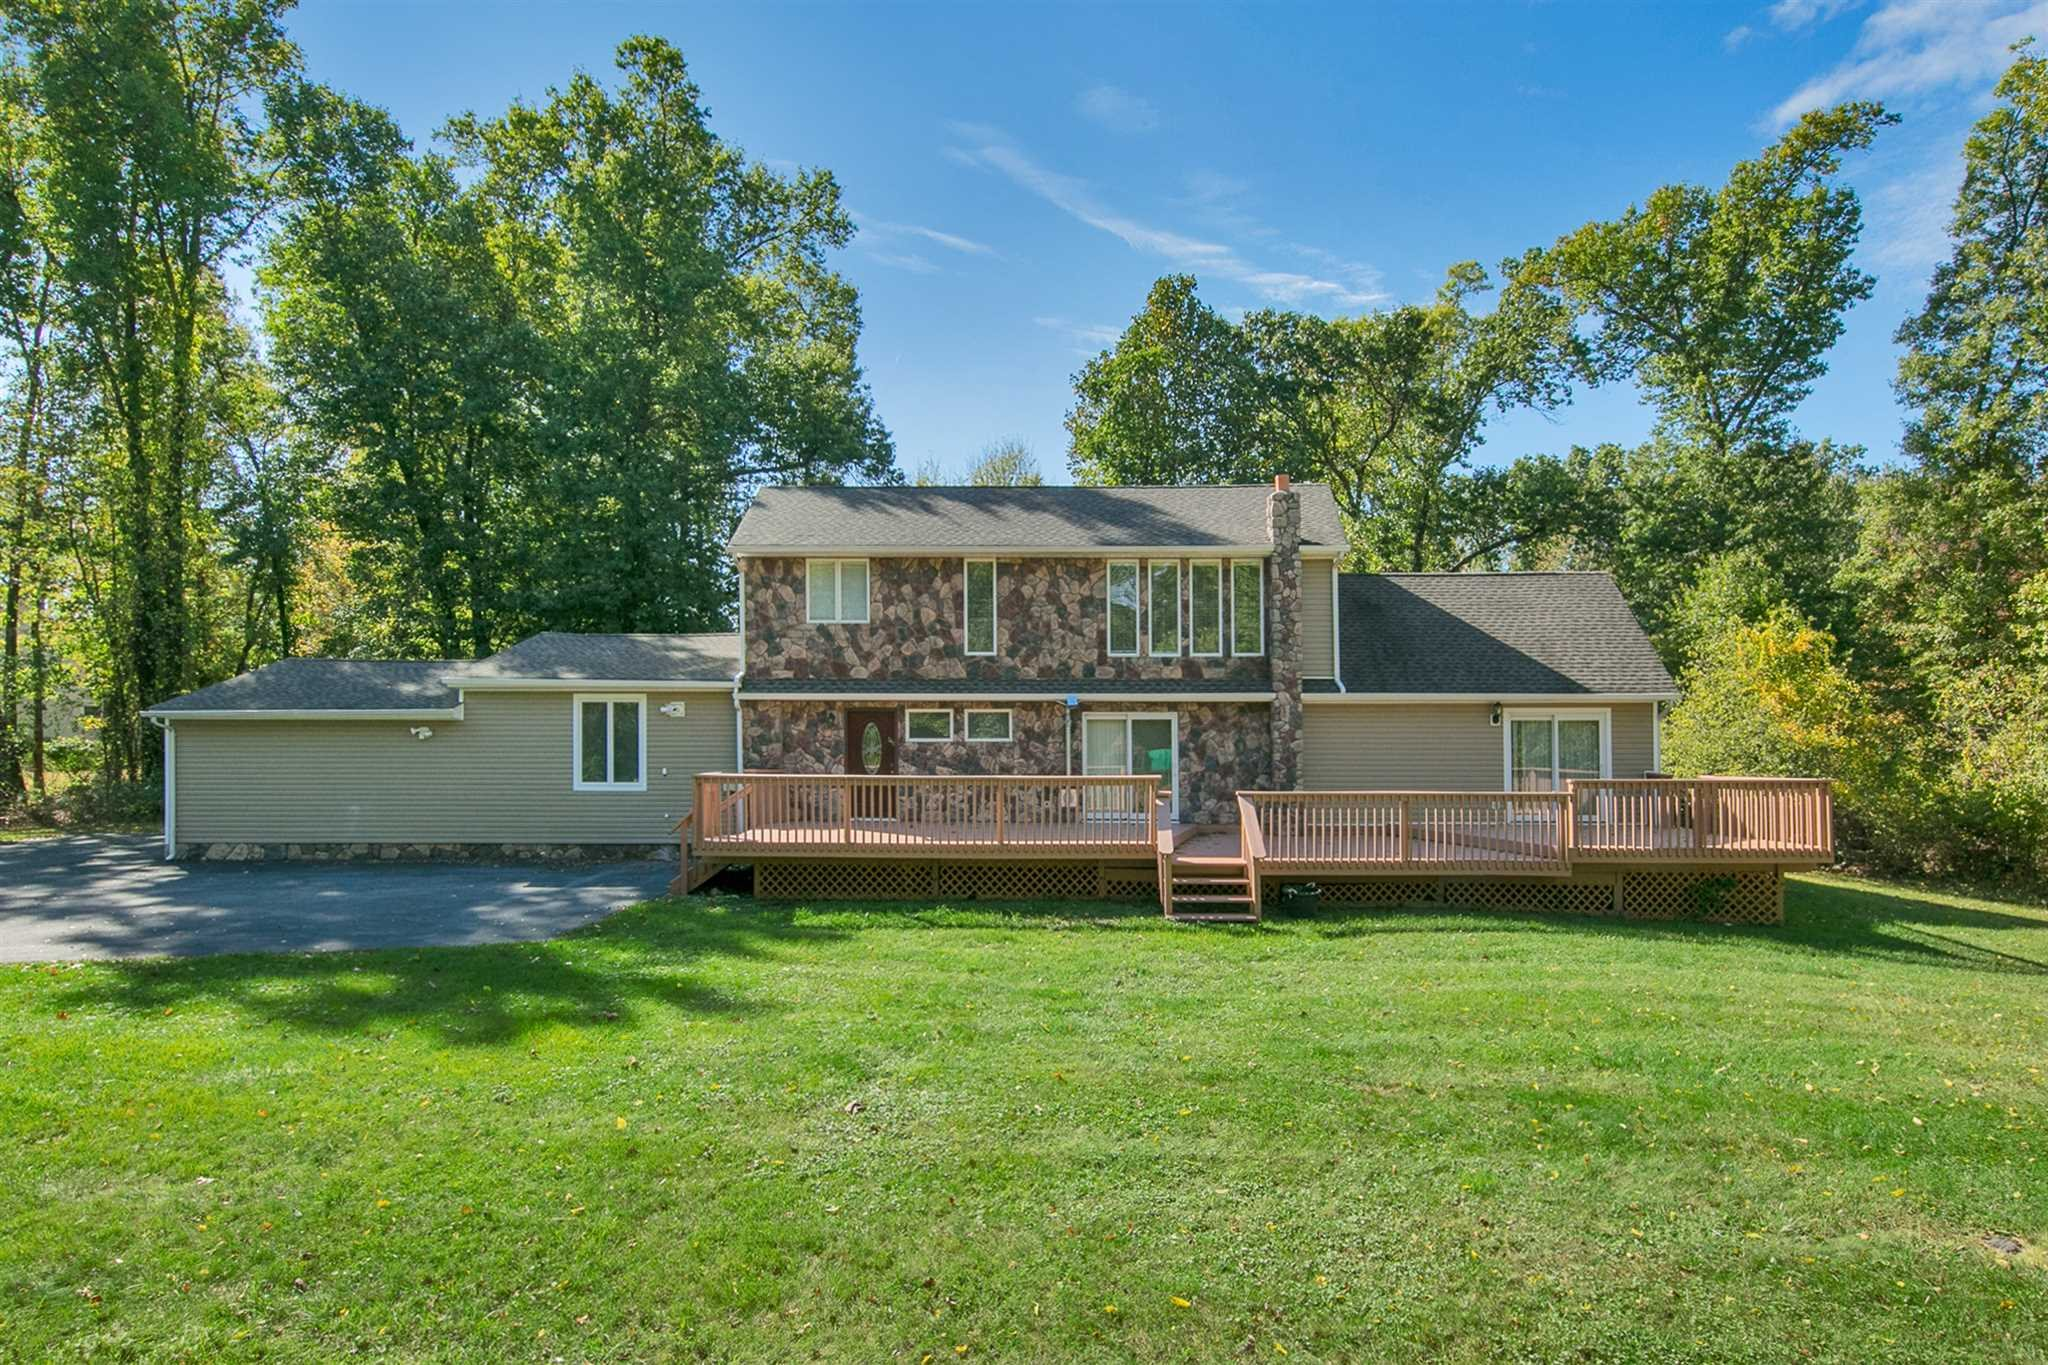 Single Family Home for Sale at 263 BAXTERTOWN Road 263 BAXTERTOWN Road Fishkill, New York 12524 United States